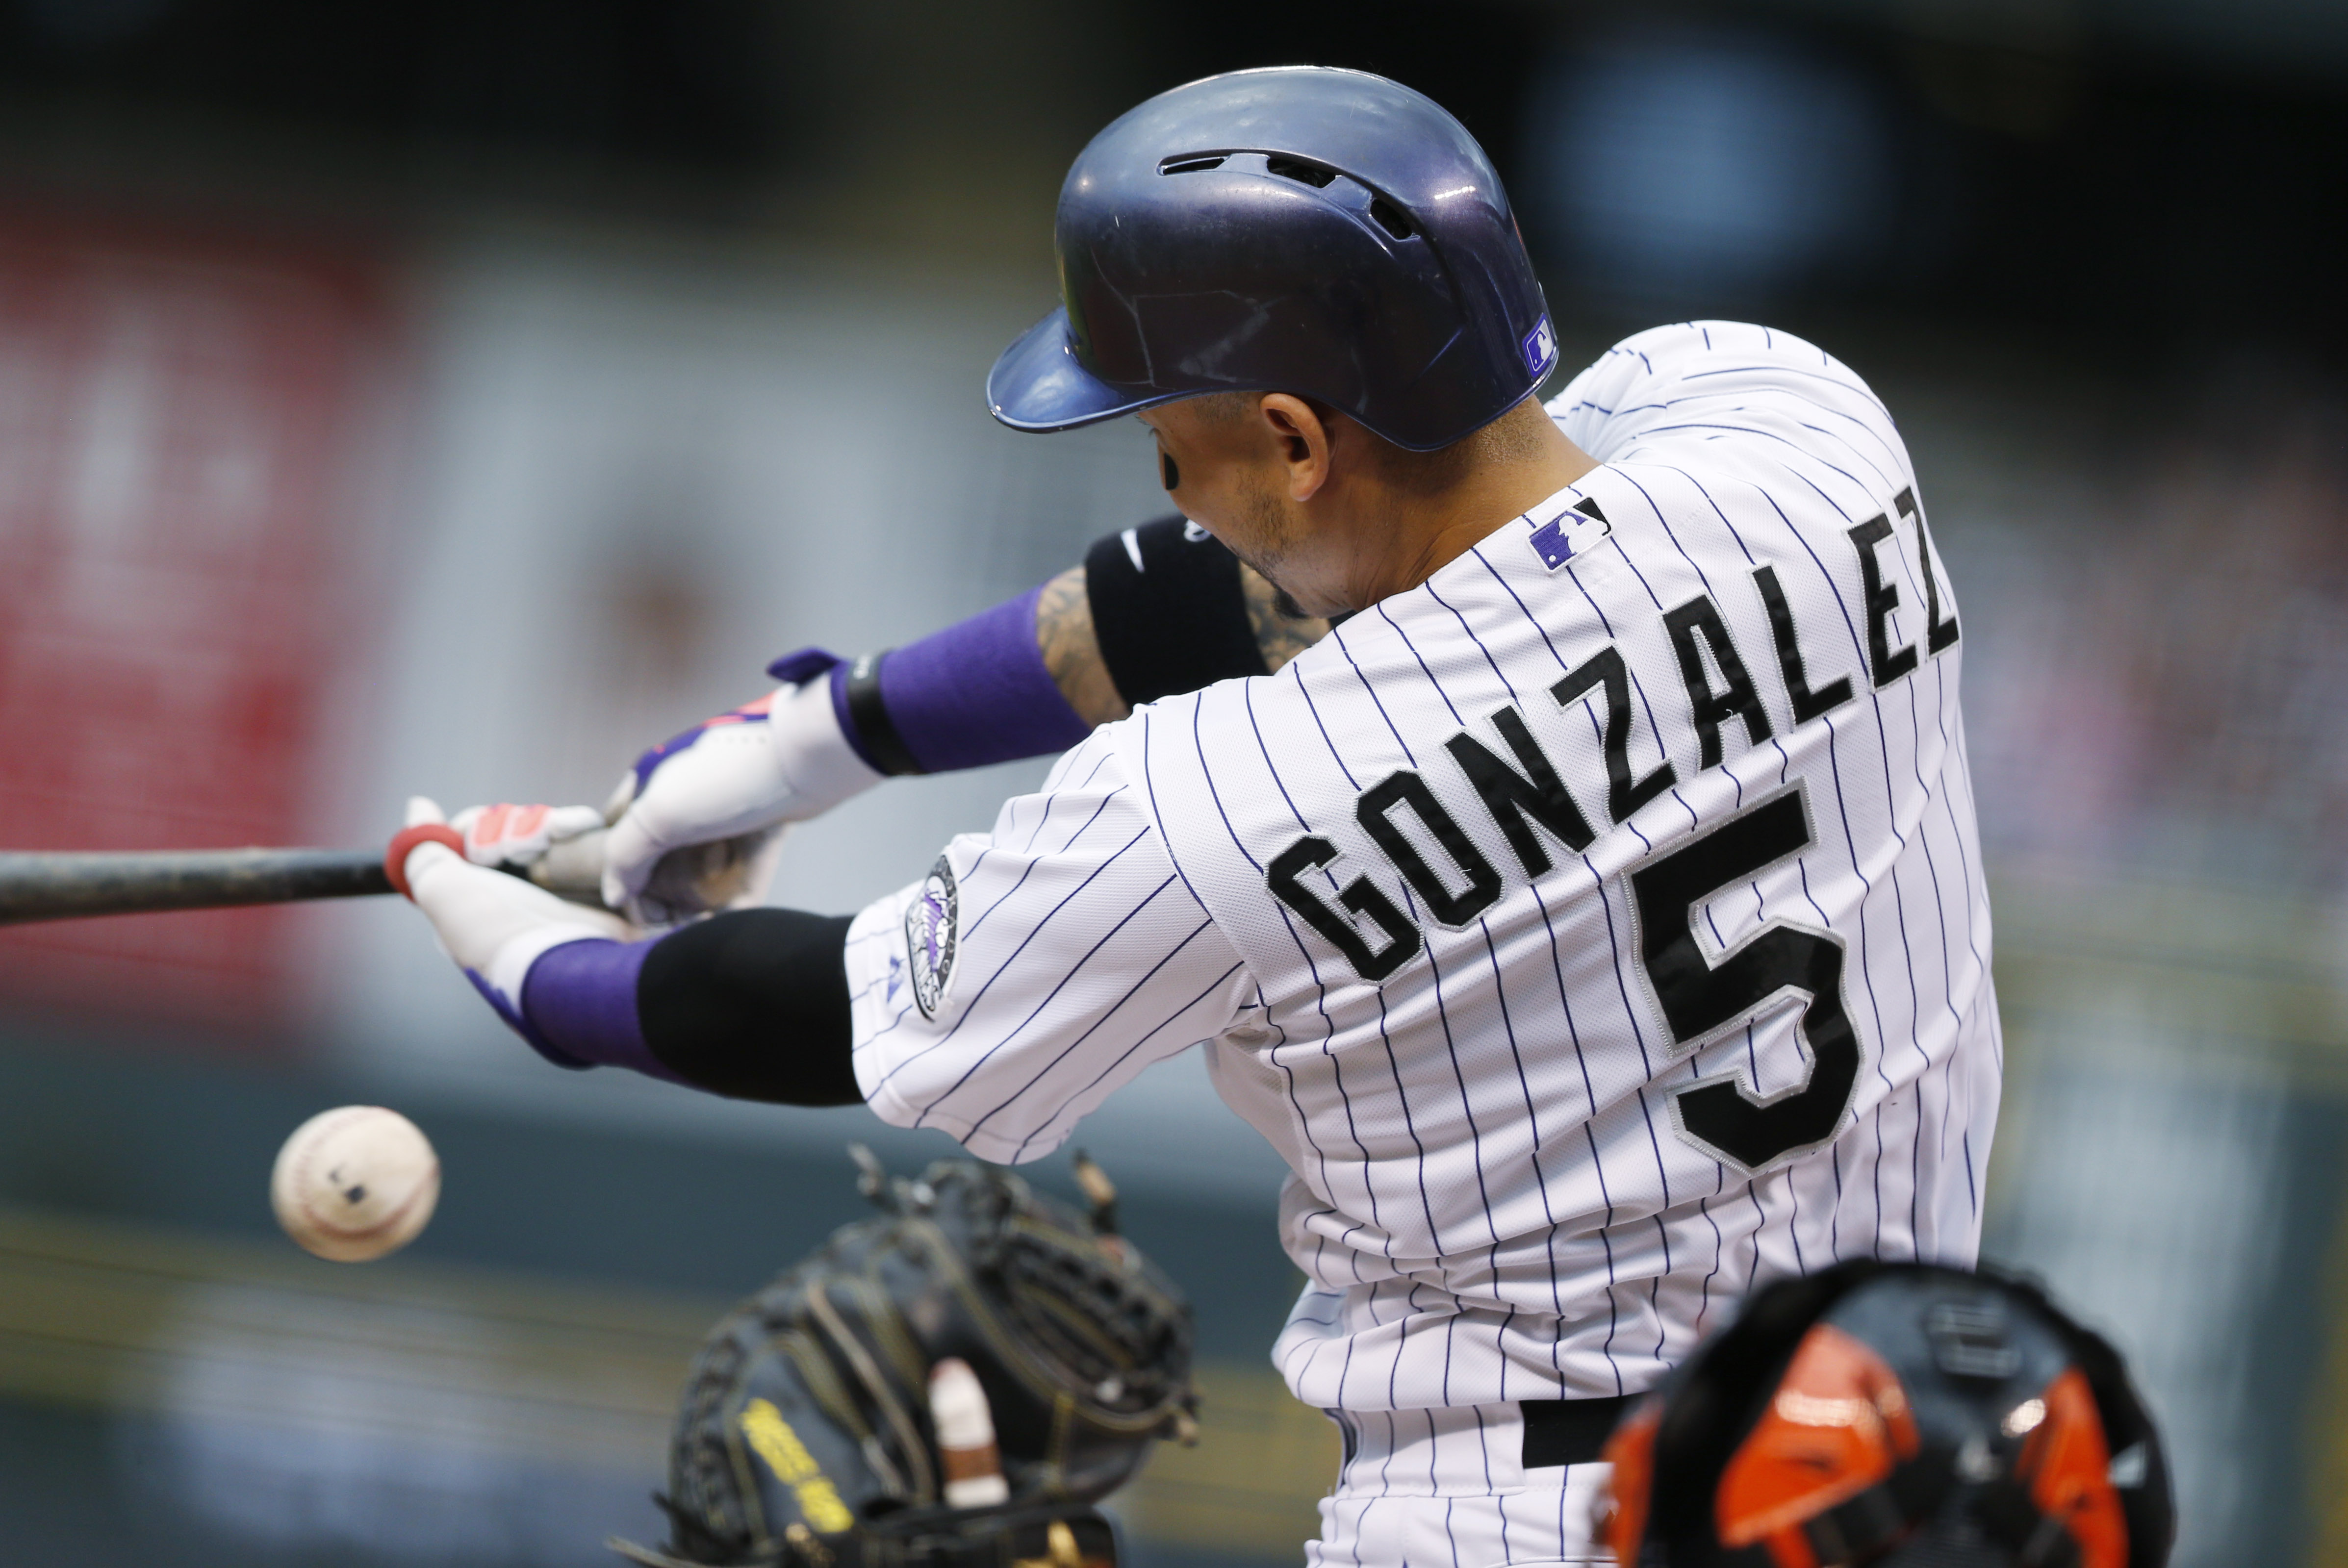 Colorado Rockies' Carlos Gonzalez, back, swings and misses a pitch as San Francisco Giants catcher Hector Sanchez fields the throw from Giants starting pitcher Jake Peavy in the first inning of a baseball game Saturday, Sept. 5, 2015, in Denver. (AP Photo